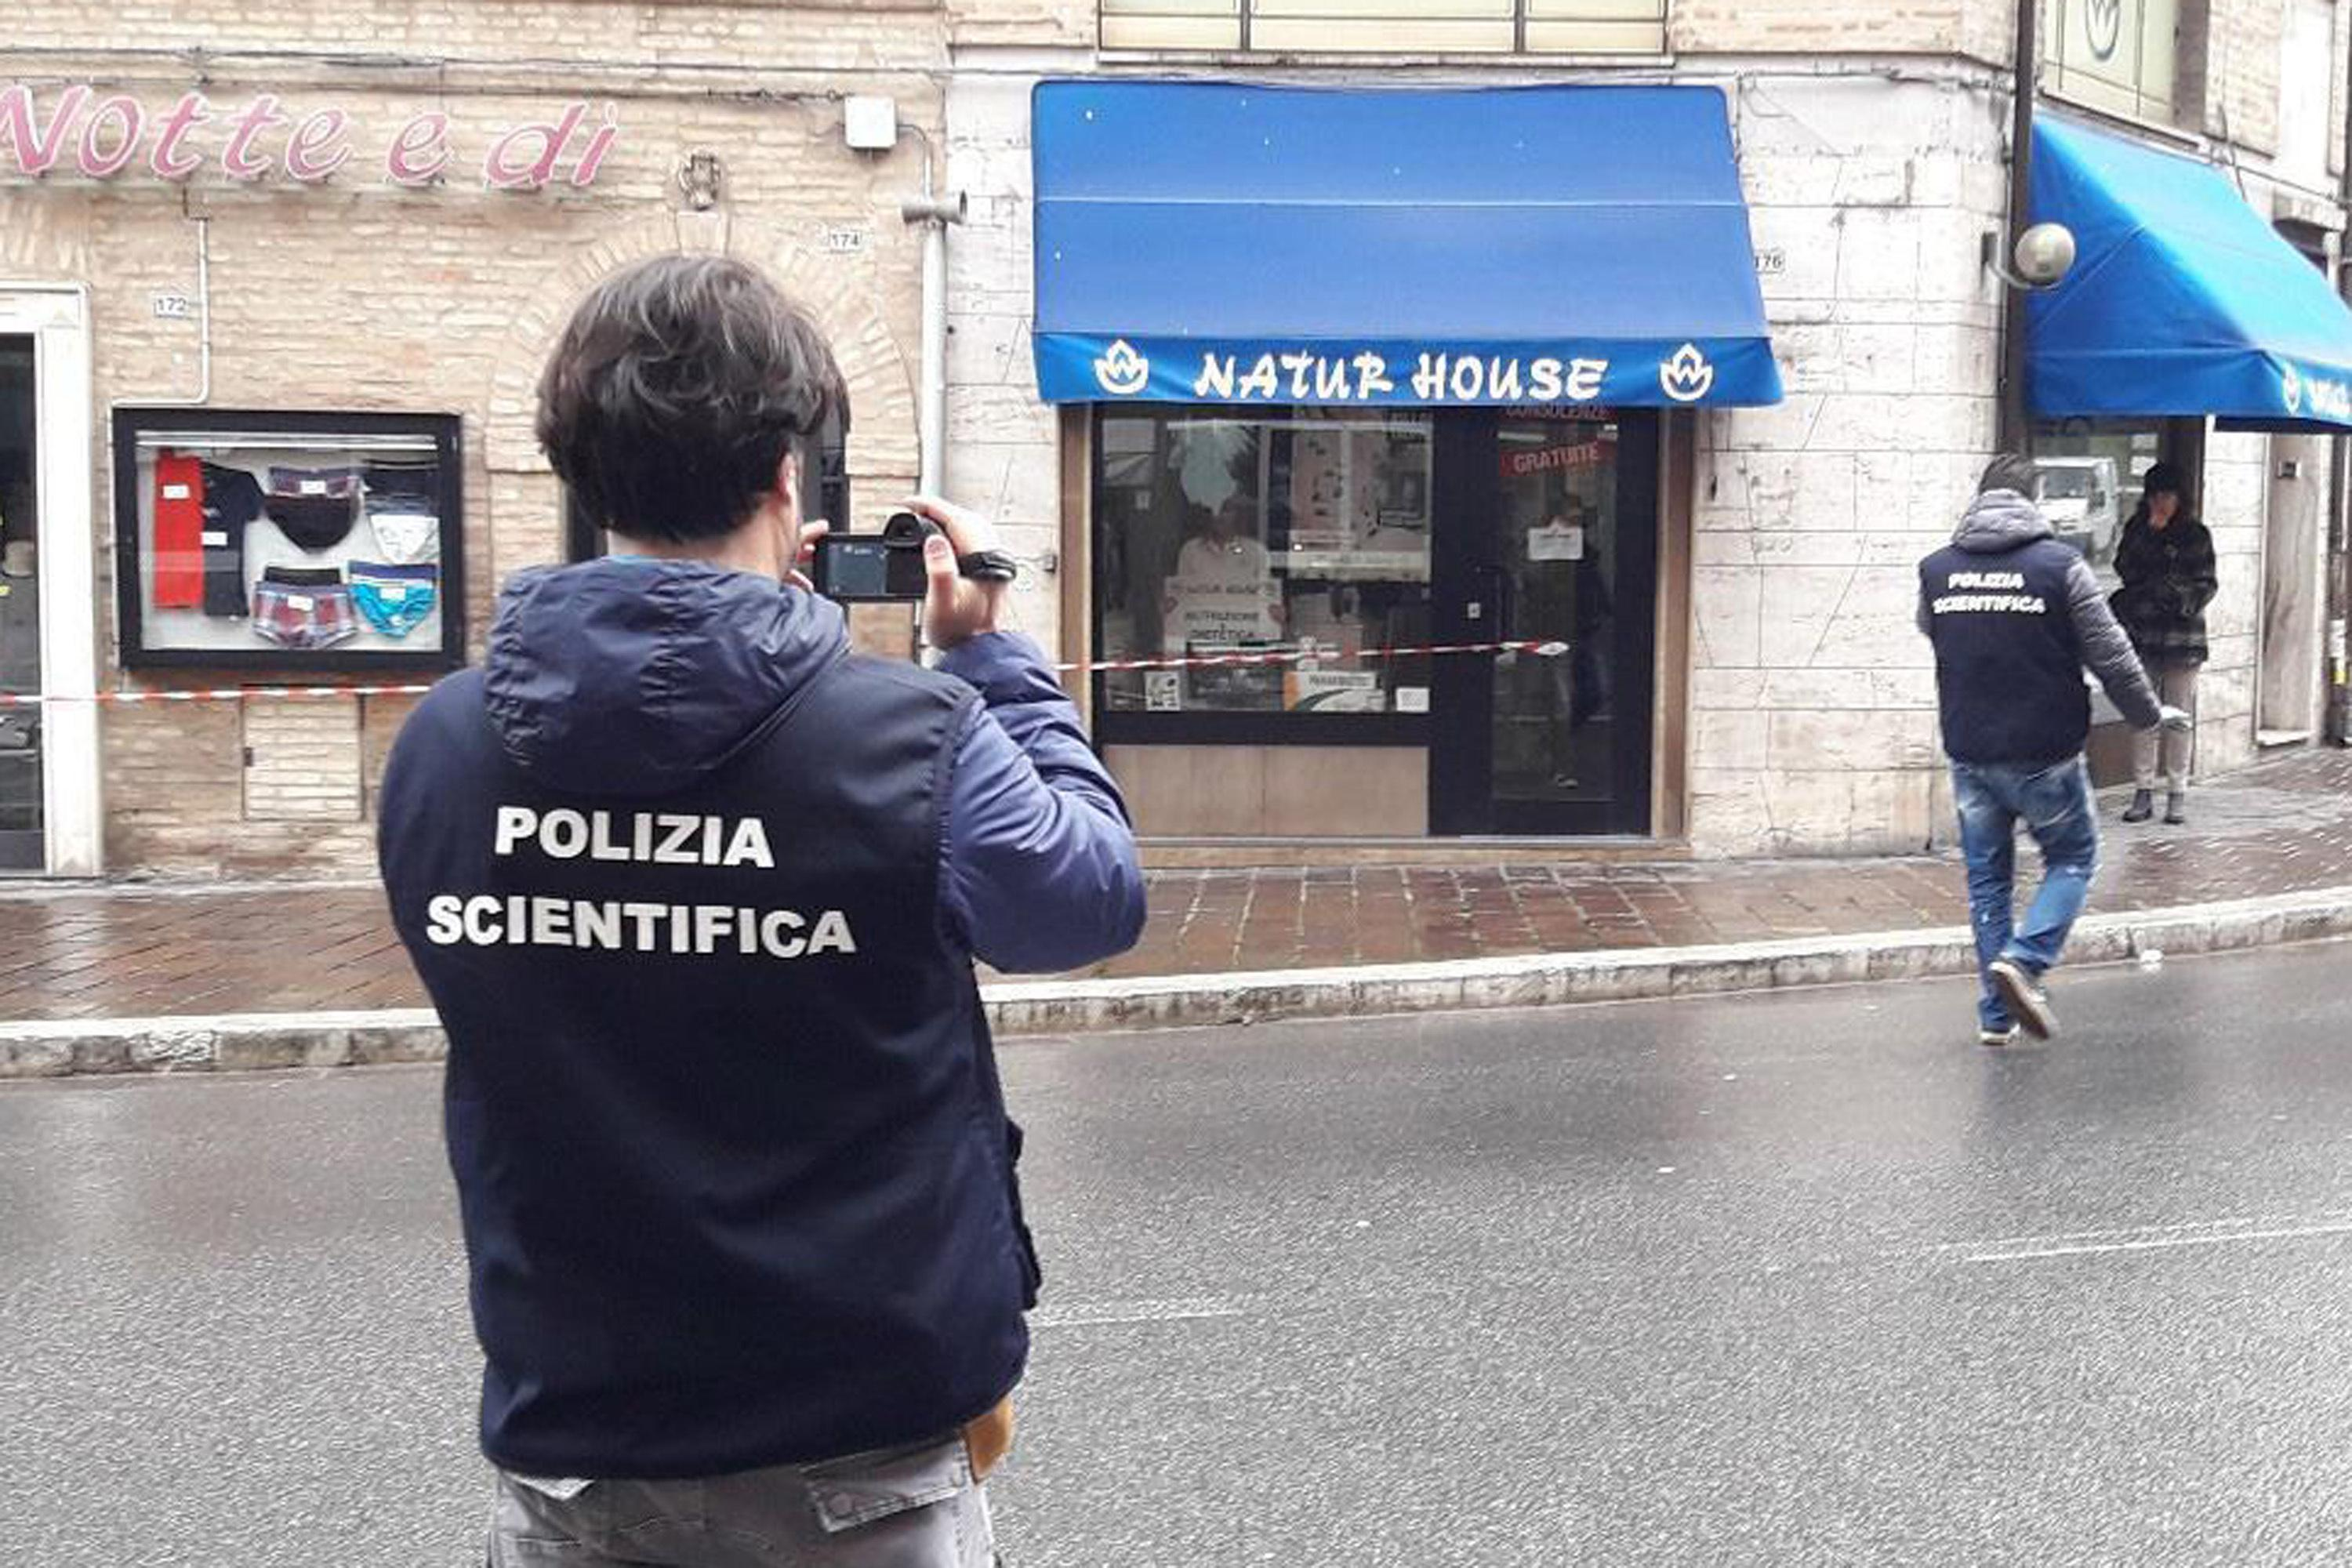 Italian Forensic policemen take pictures to the site of a shooting which broke out in Macerata, Italy, Saturday, Feb. 3, 2018. A lone gunman opened fire on foreigners in drive-by shootings in a central Italian city, wounding an undisclosed number of people Saturday morning before being arrested, police said. The suspect's motive wasn't immediately clear, but the city of Macerata is still reeling from the gruesome killing of a young Italian woman this week, allegedly at the hands of a Nigerian immigrant. (Carotti/ANSA via AP)